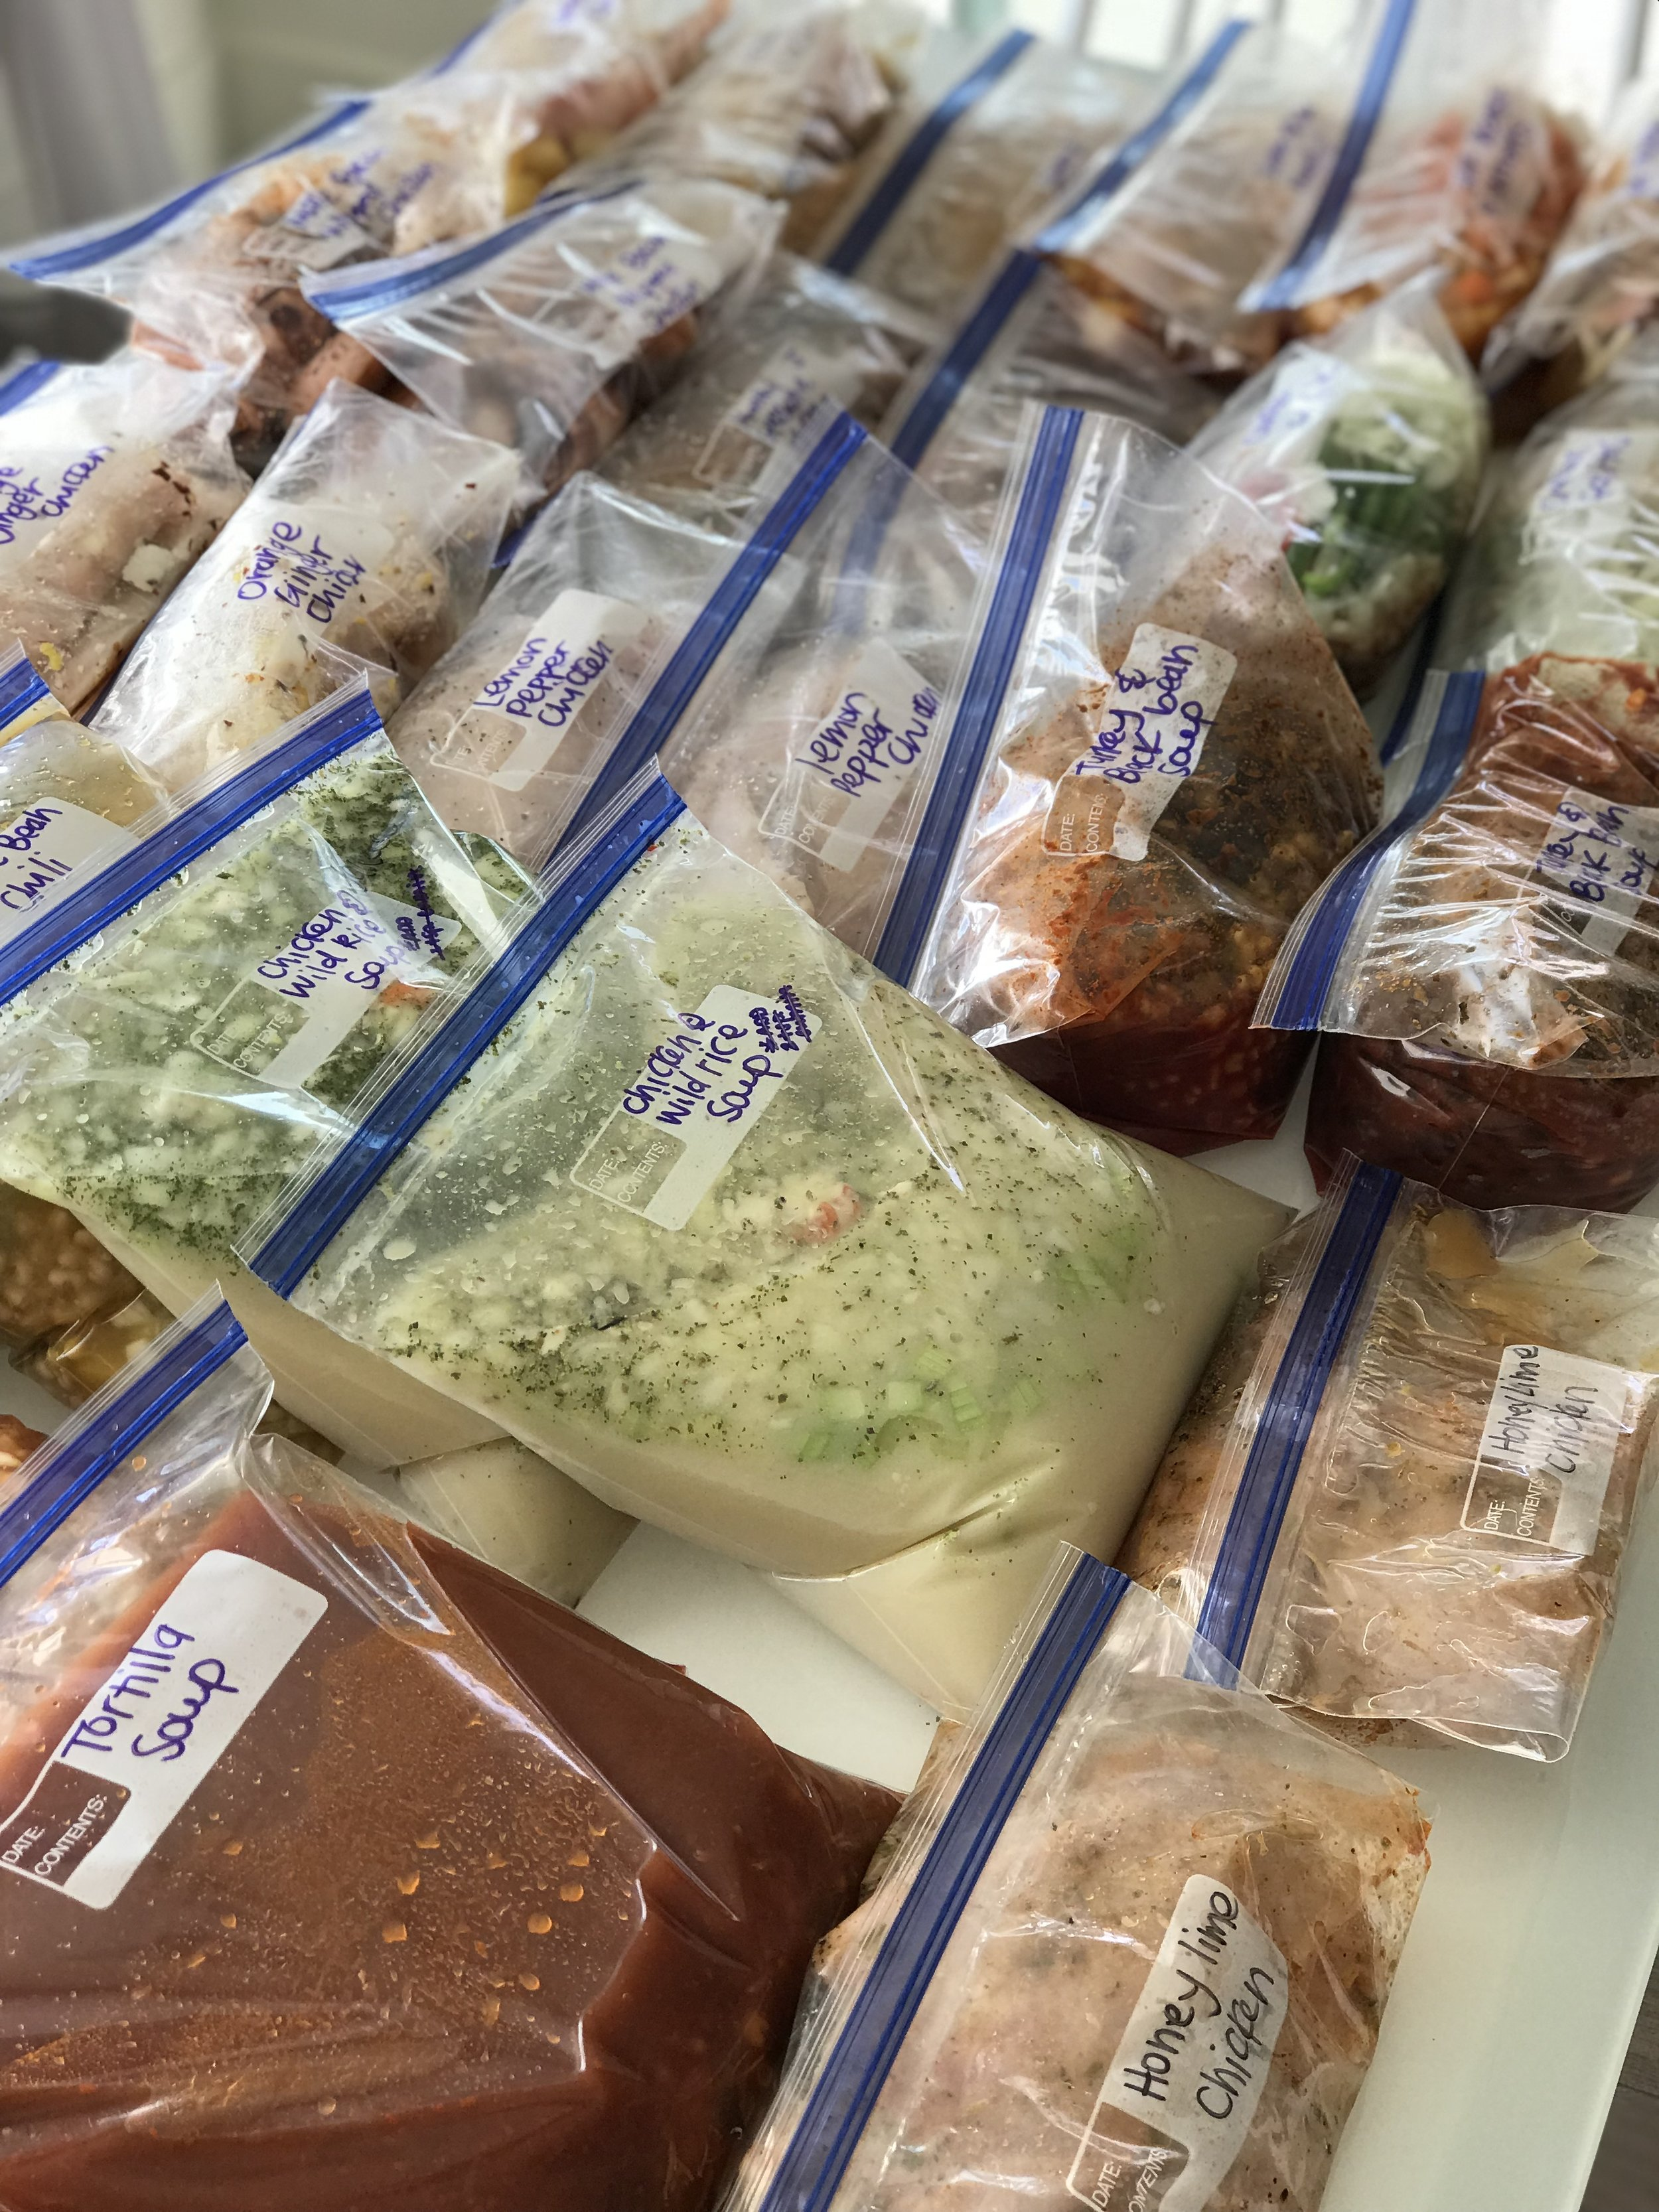 Meals all packaged up ready to go in the freezer